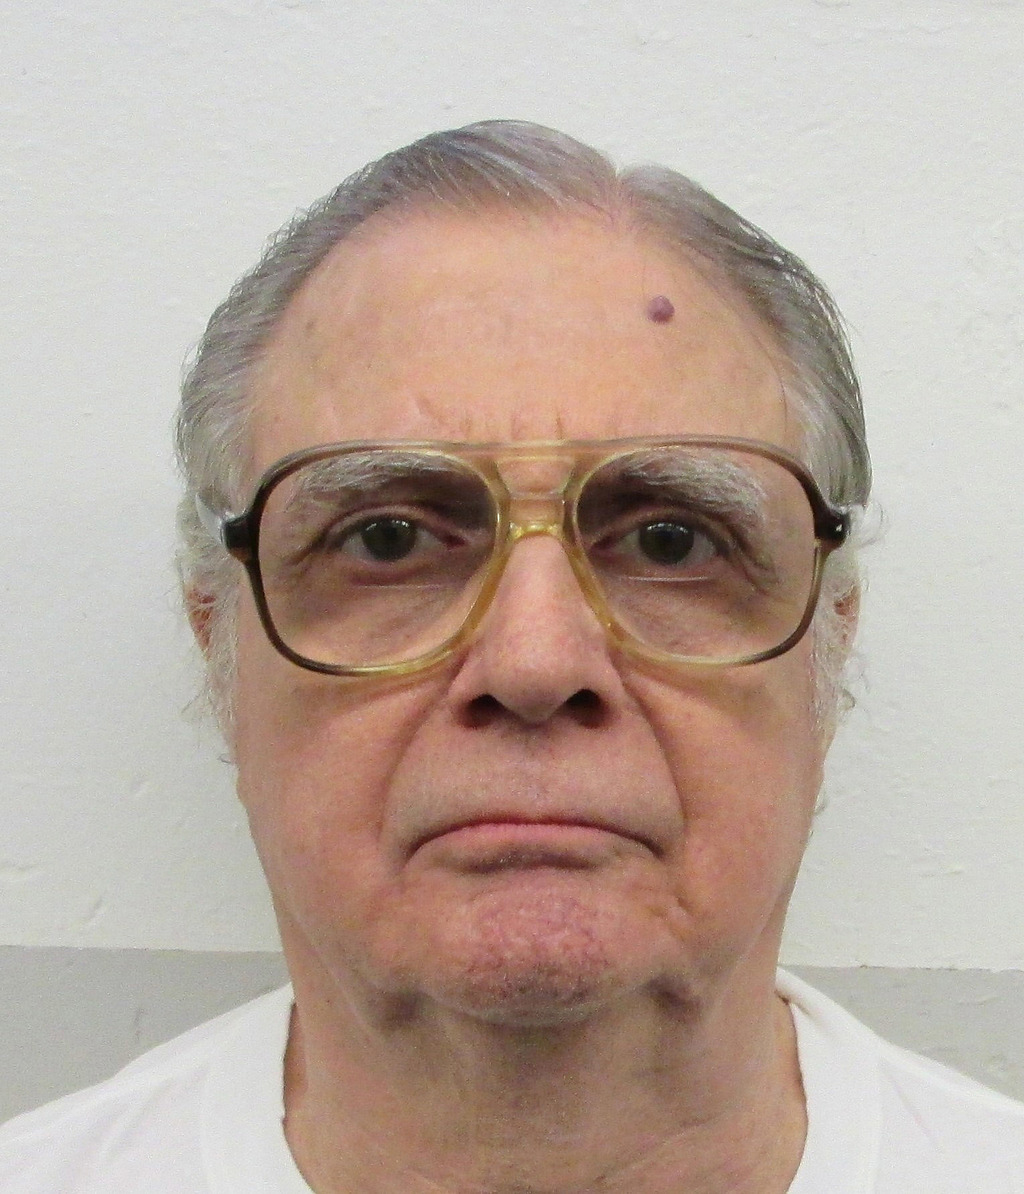 Alabama death row inmate files flurry of last minute appeals